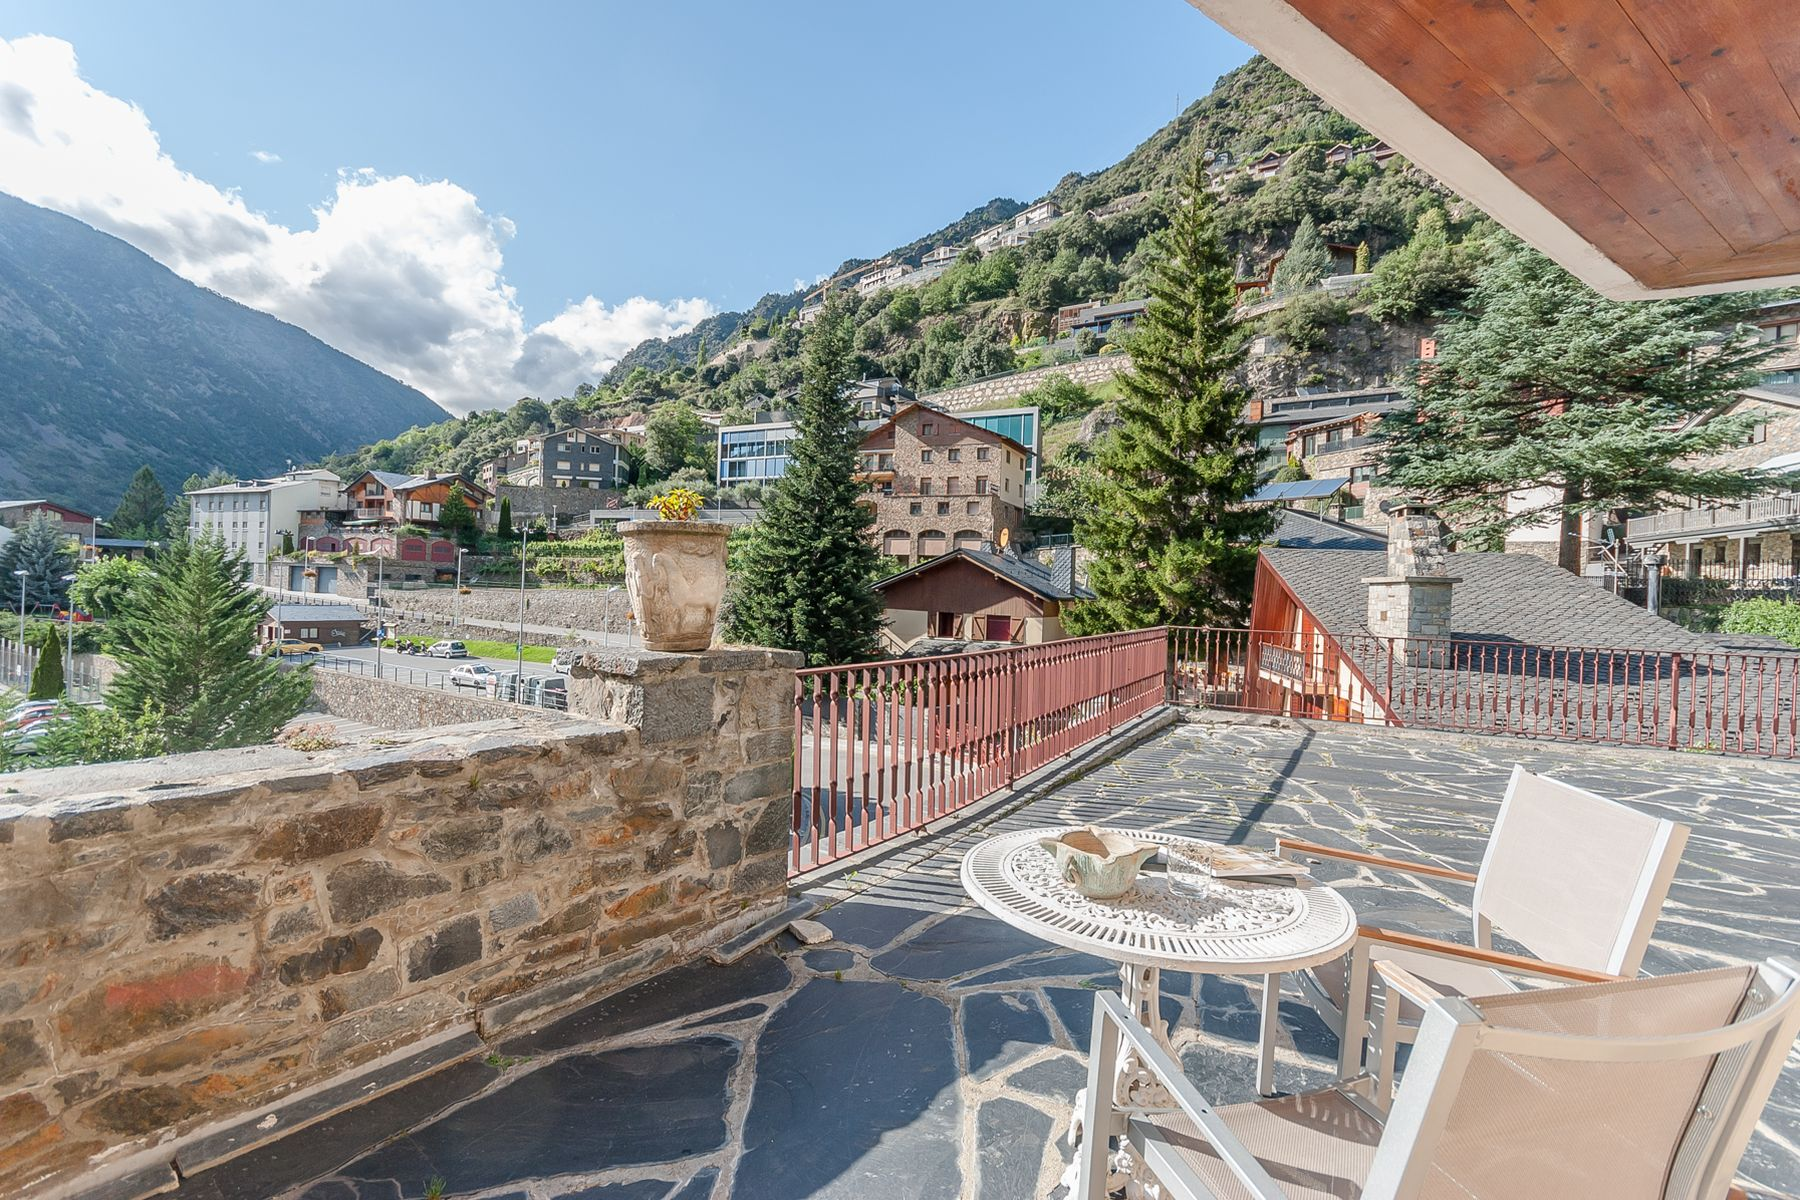 Частный односемейный дом для того Продажа на Chalet-Tower for sale in Escaldes-Engordany Escaldes Engordany, Escaldes Engordany, AD700 Andorra